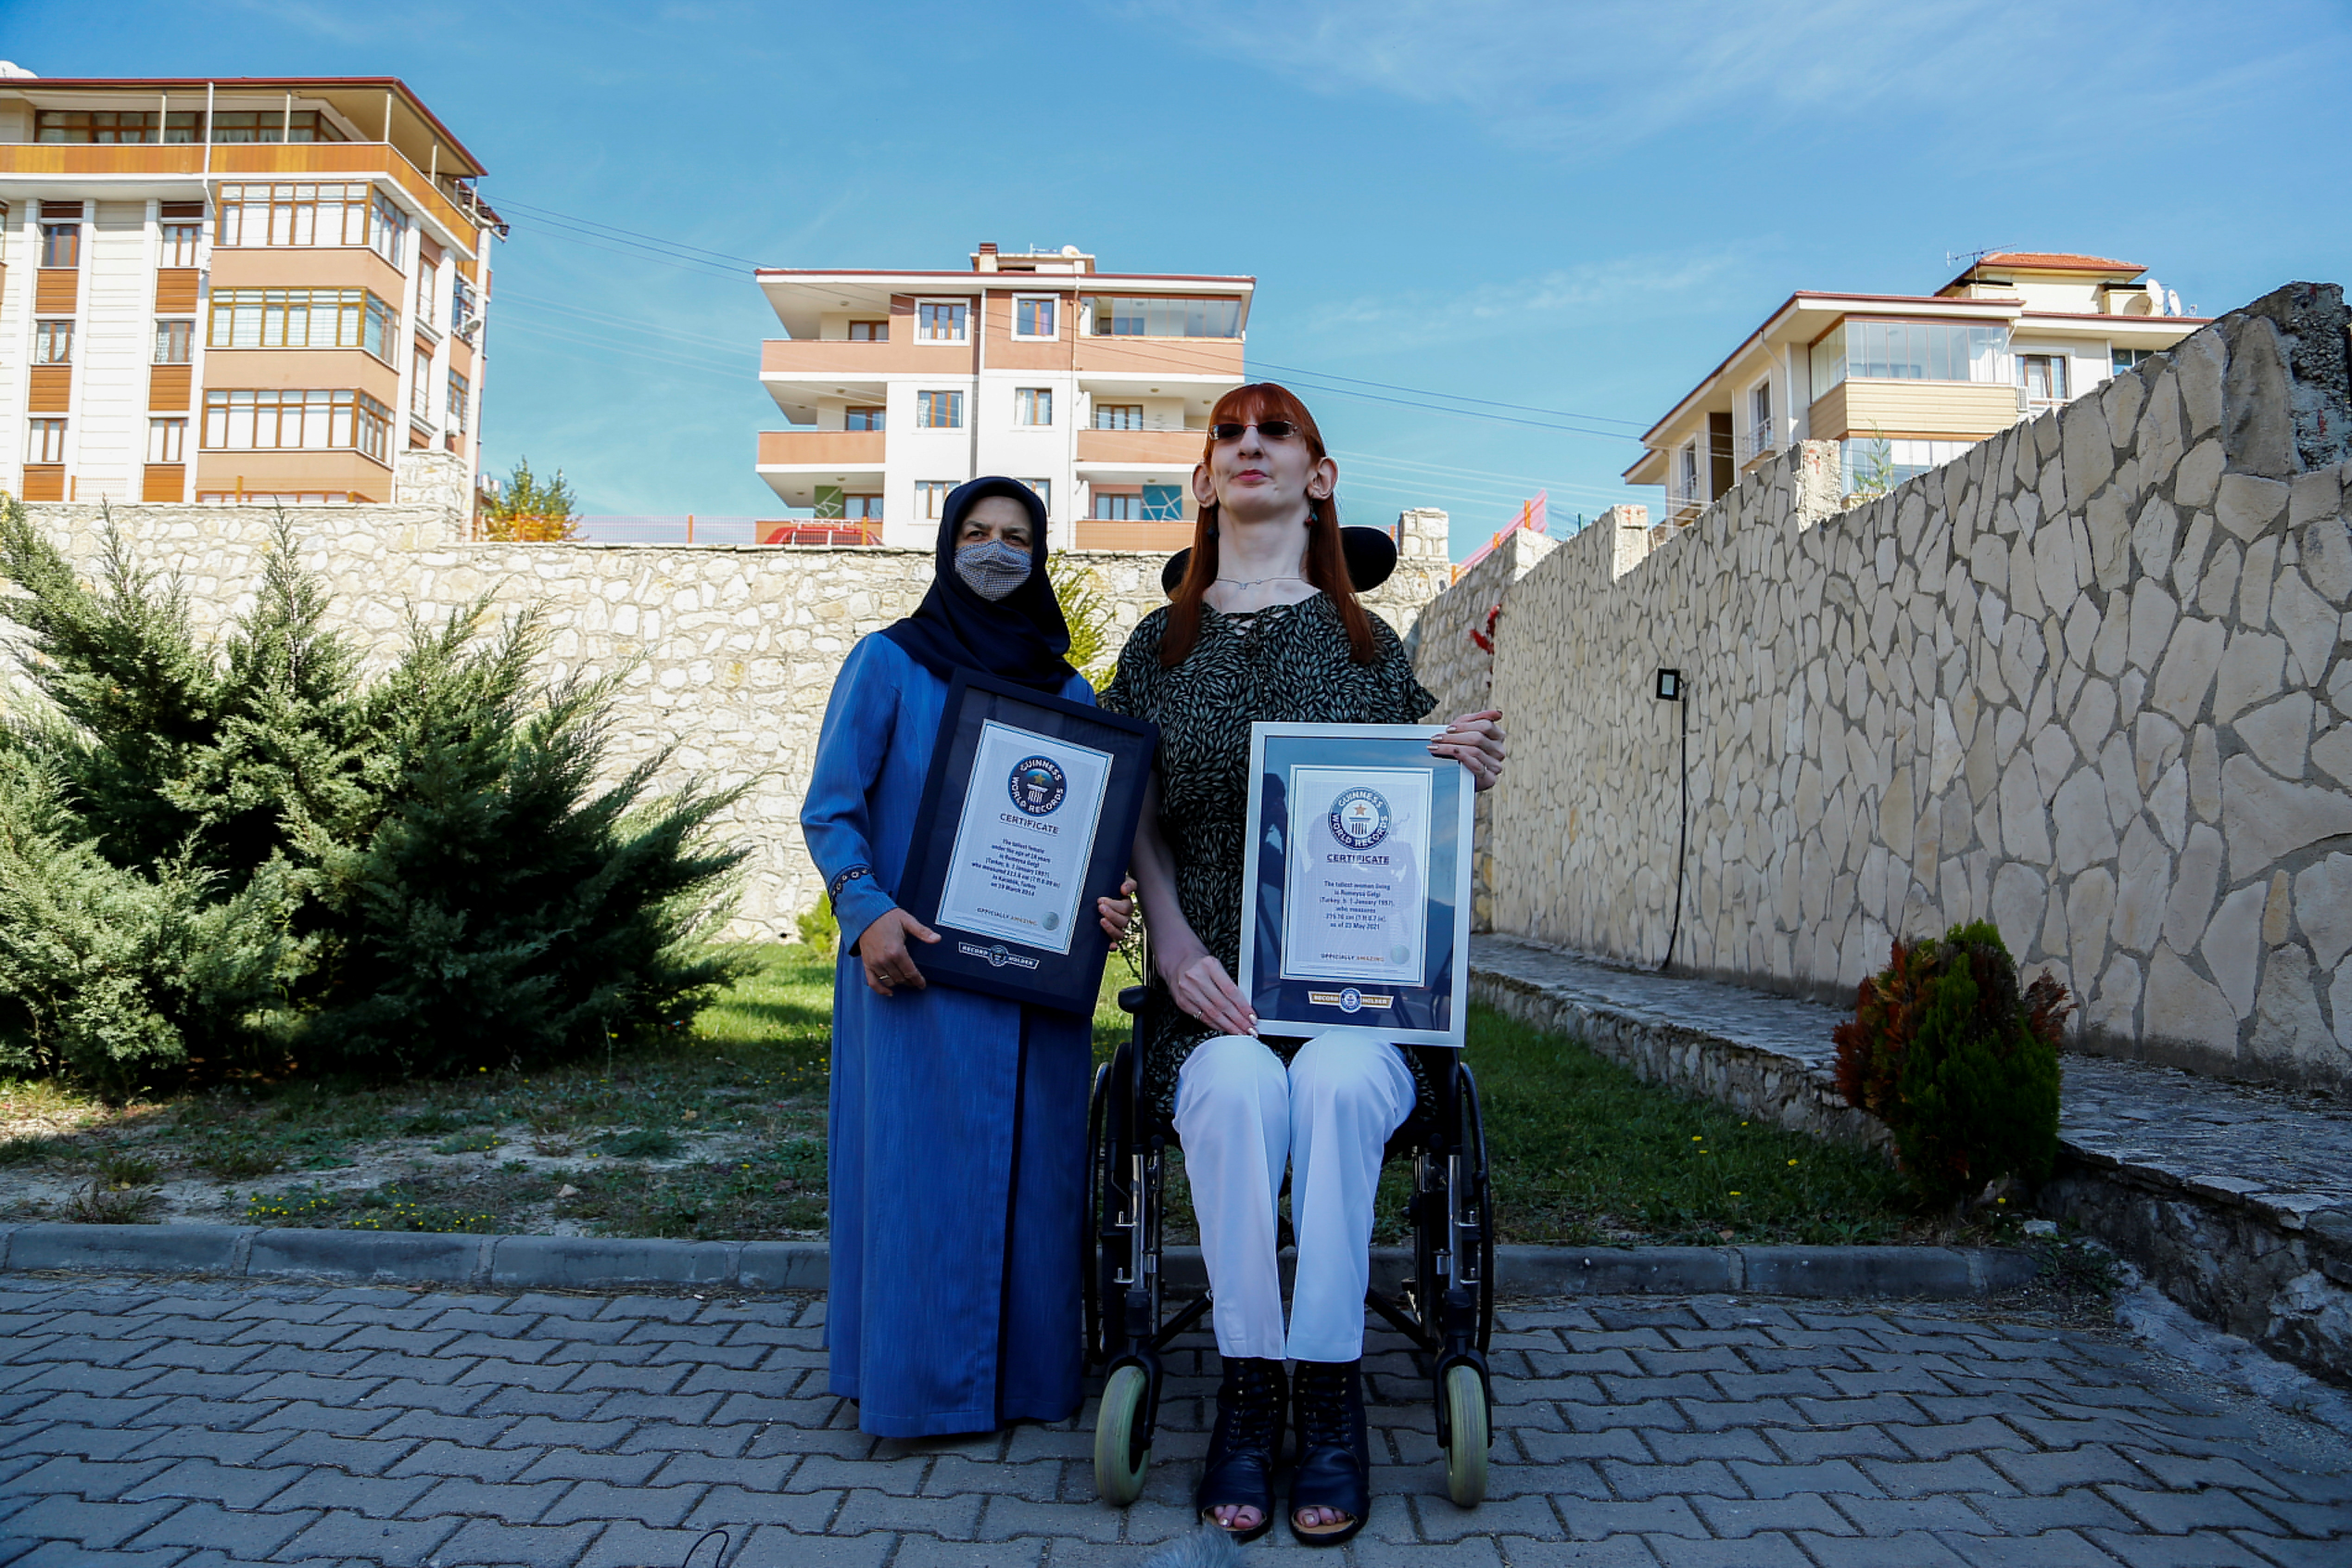 World's tallest woman Rumeysa Gelgi, accompanied by her mother Safiye Gelgi, holds the Guinness World Record certificates during a news conference outside their home in Safranbolu, Karabuk province, Turkey, October 14, 2021. REUTERS/Cagla Gurdogan